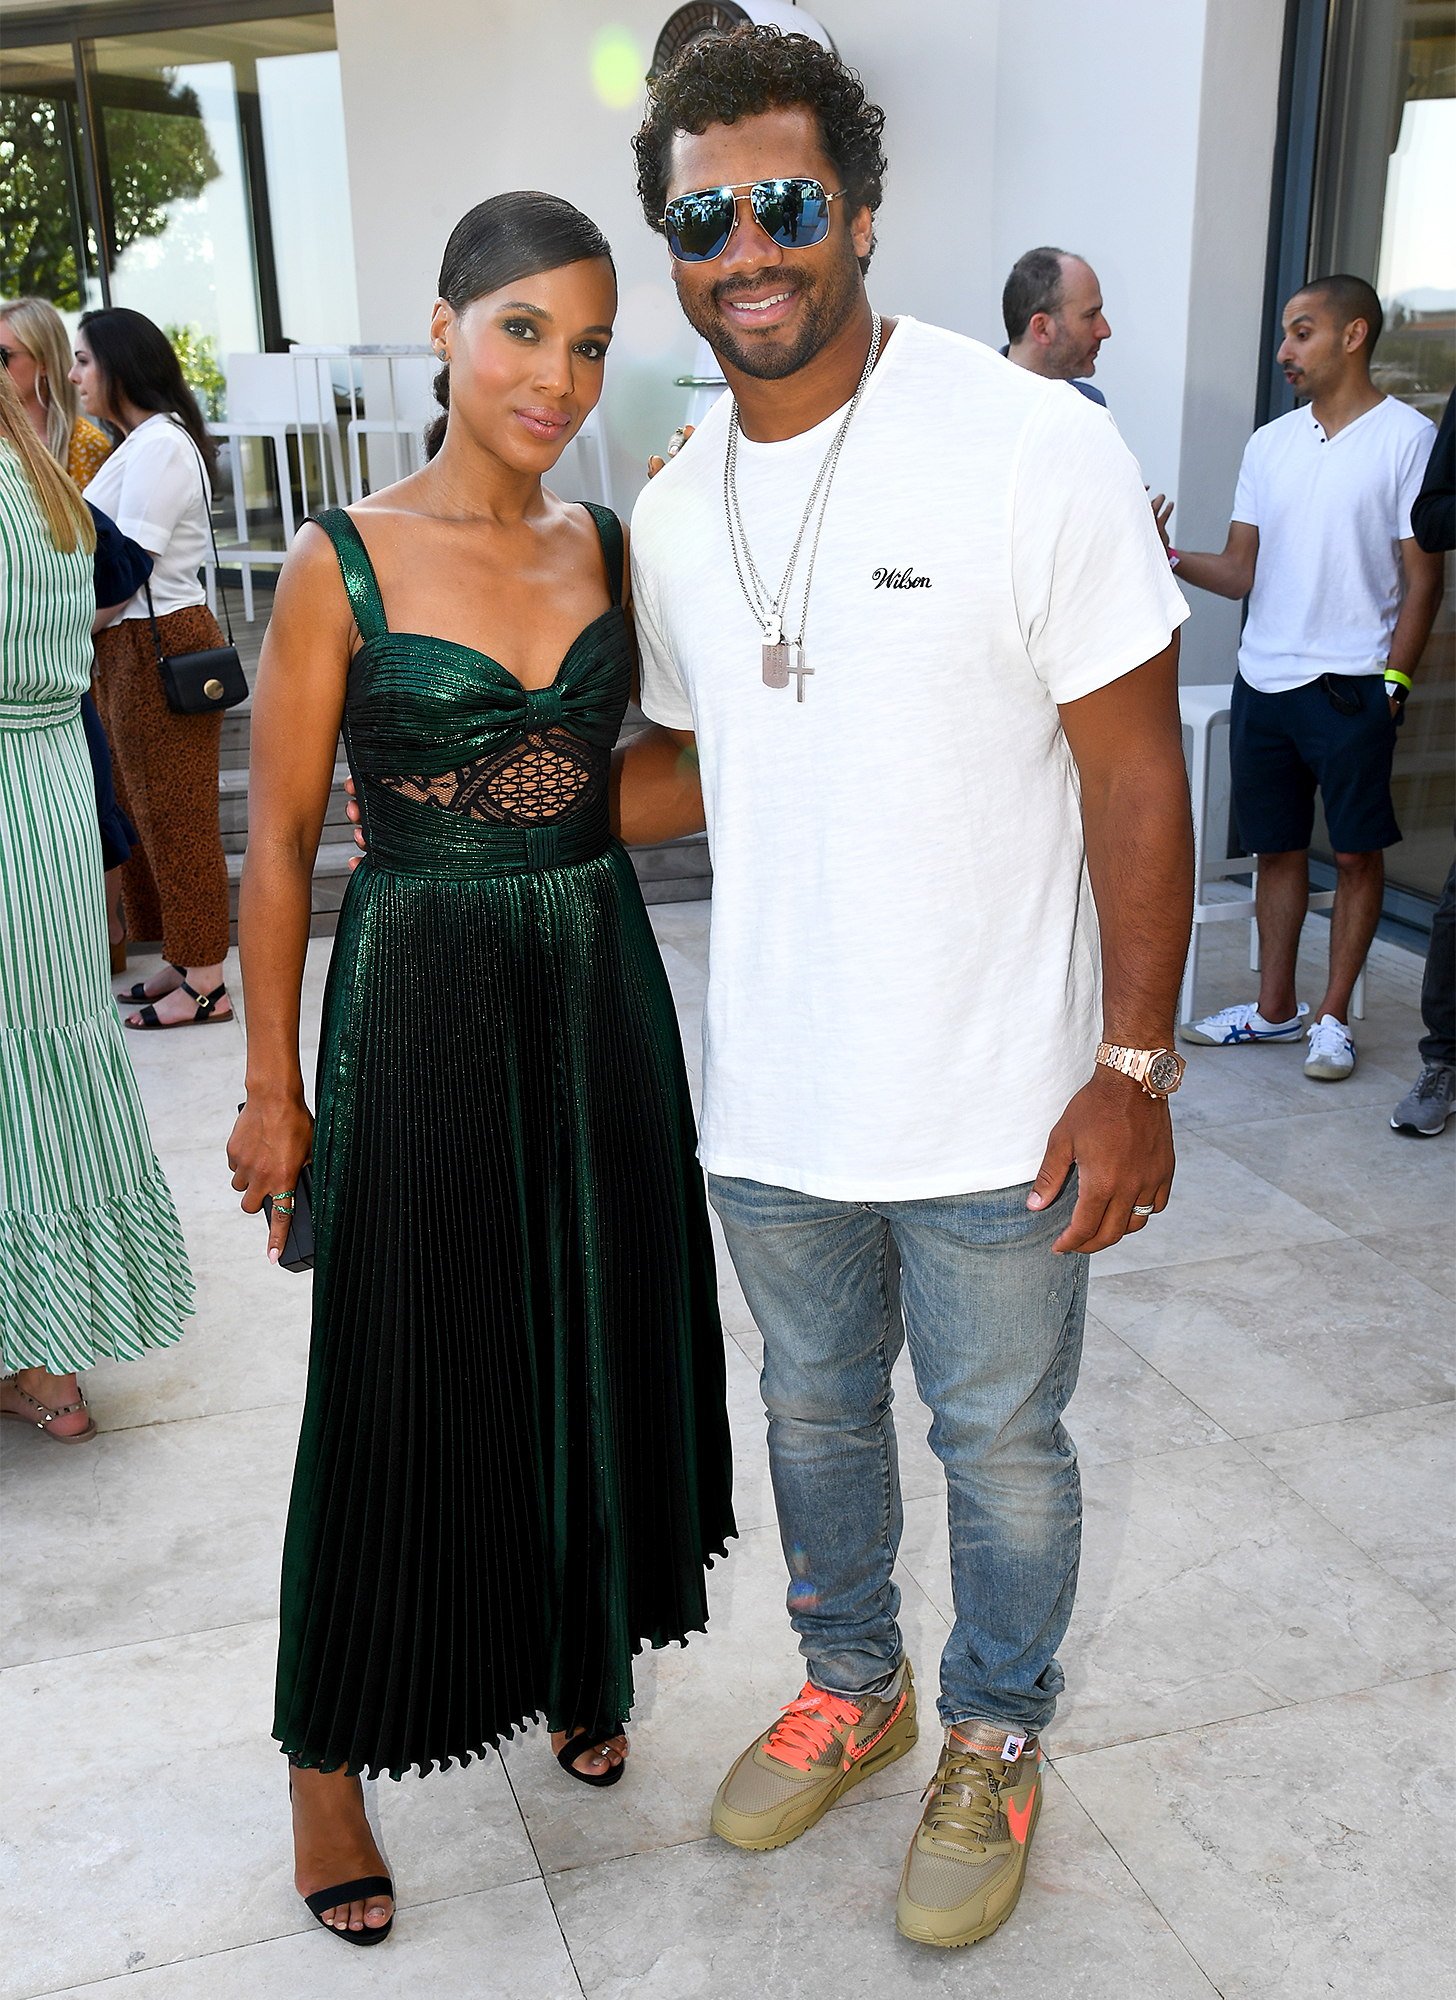 Kerry Washington and Russell Wilson